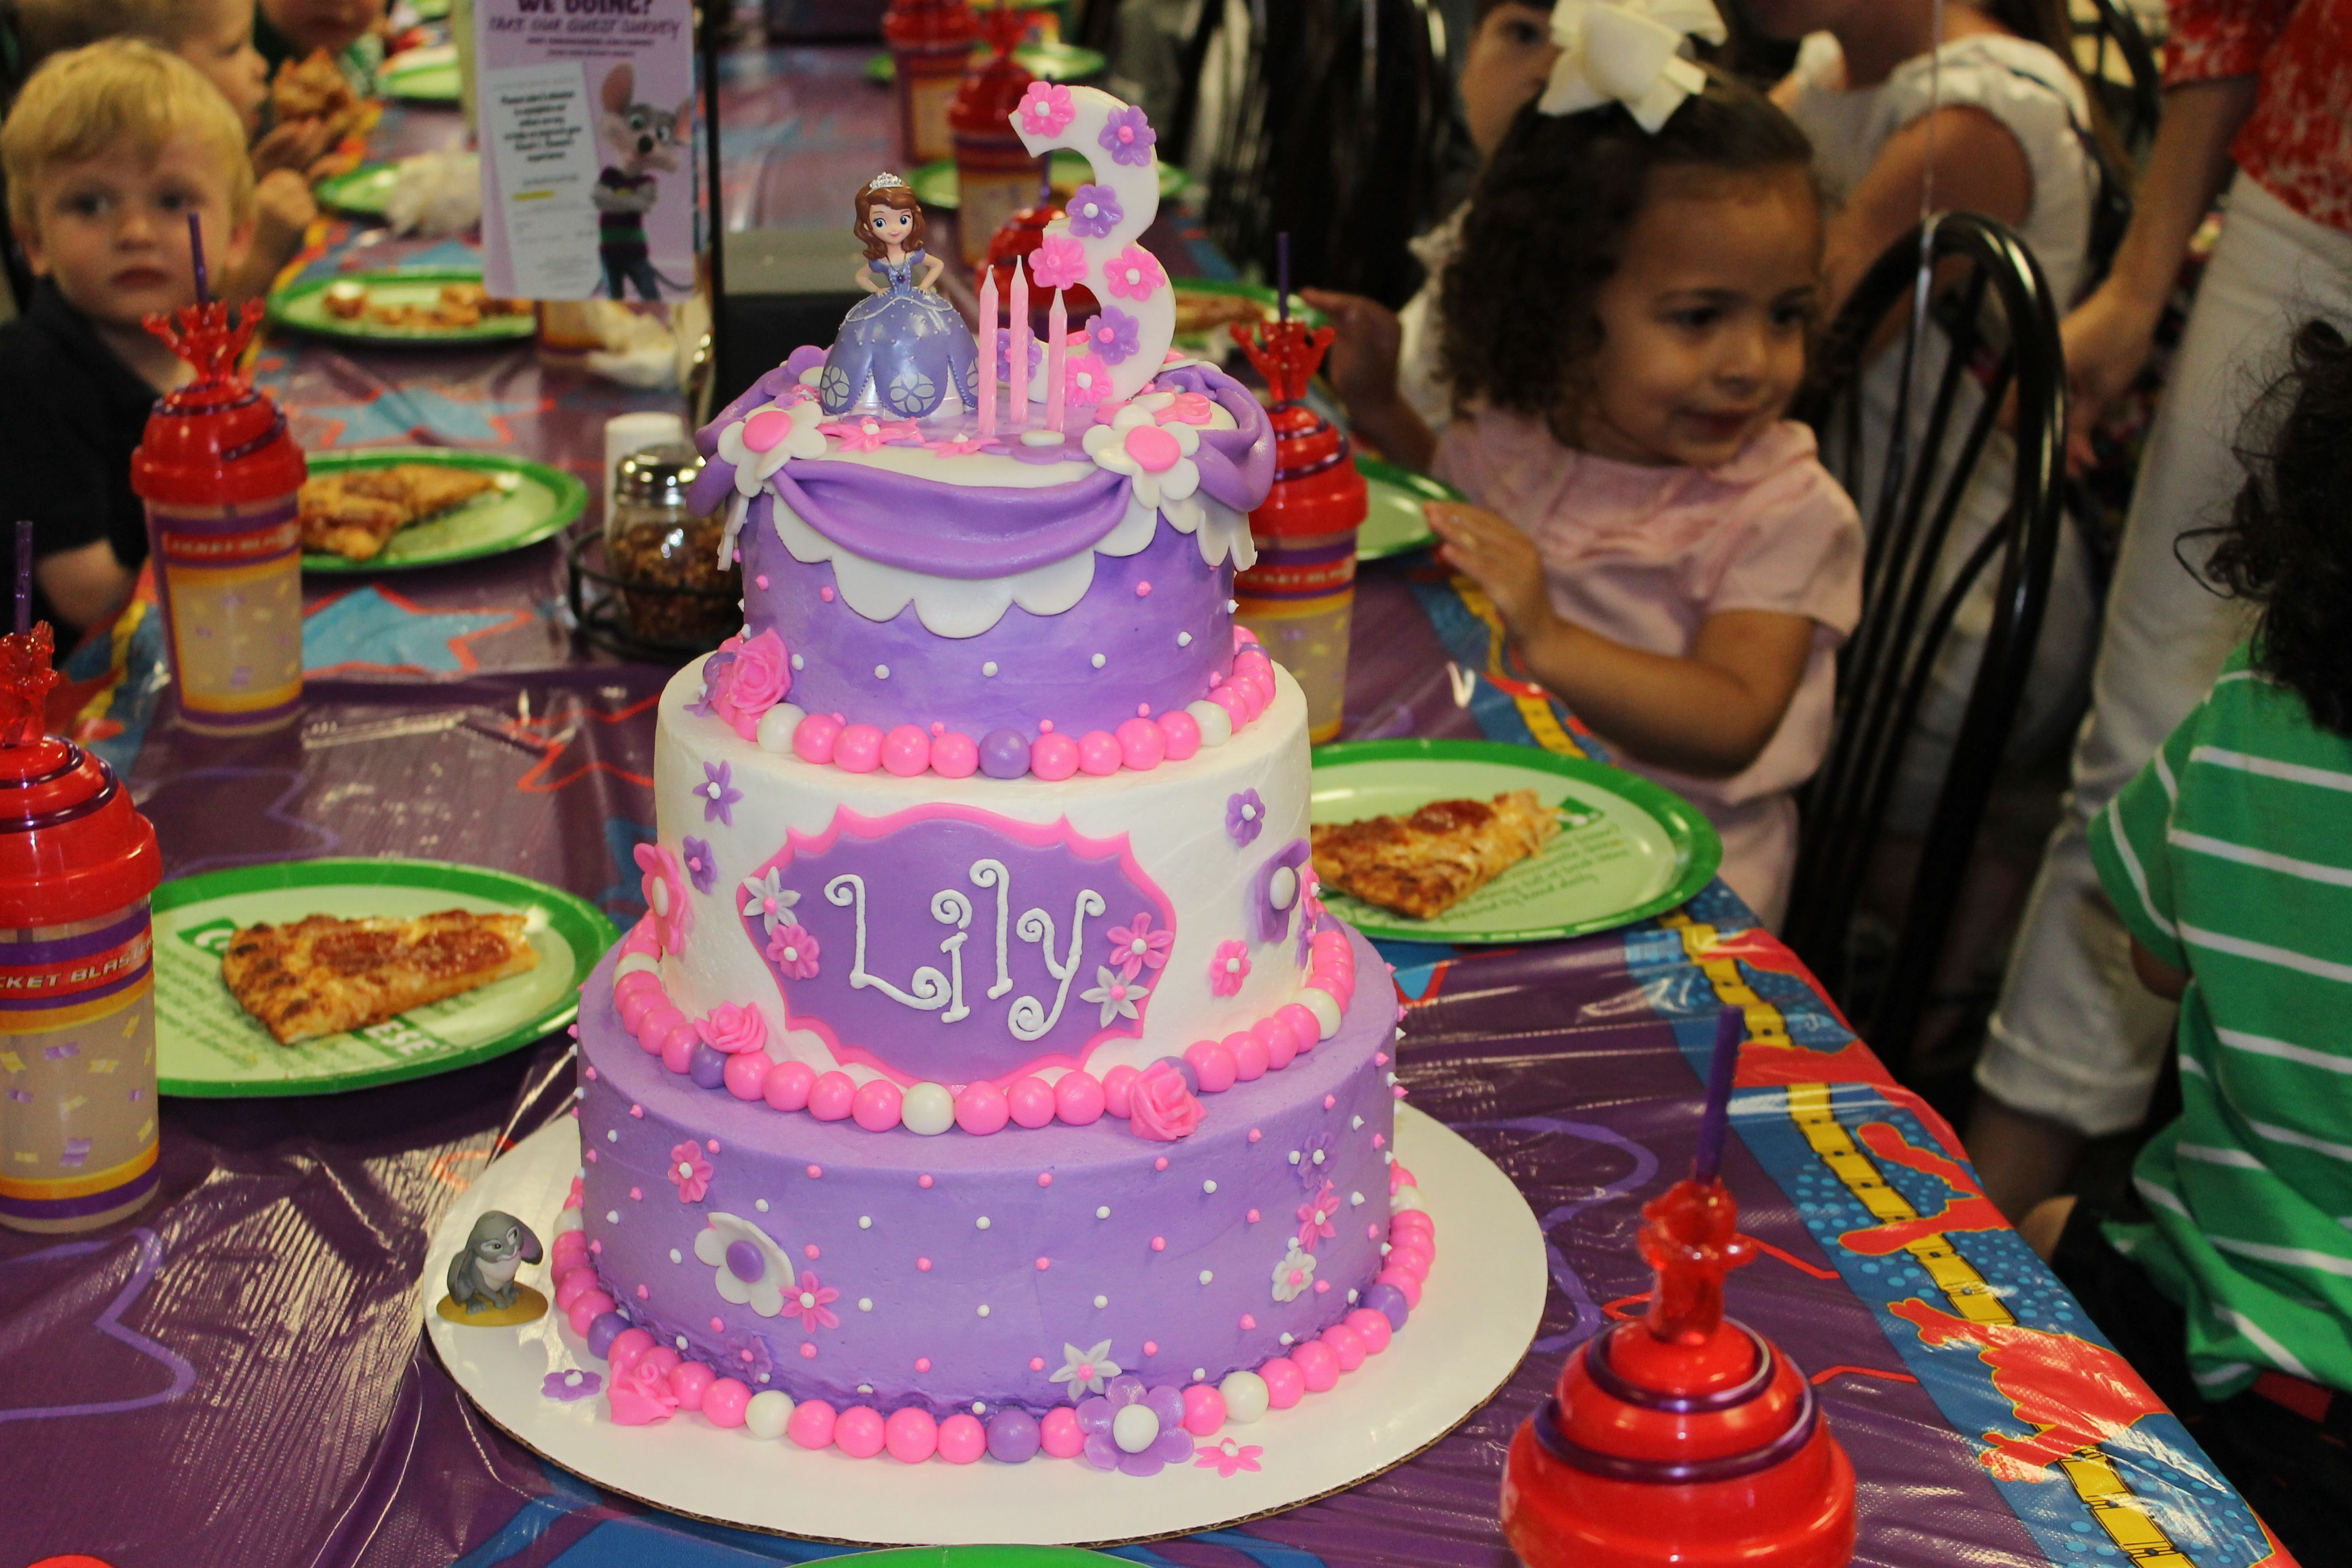 Sofia The First Cake Design Goldilocks : Sofia the First Cake Cake Ideas Pinterest Cake ...